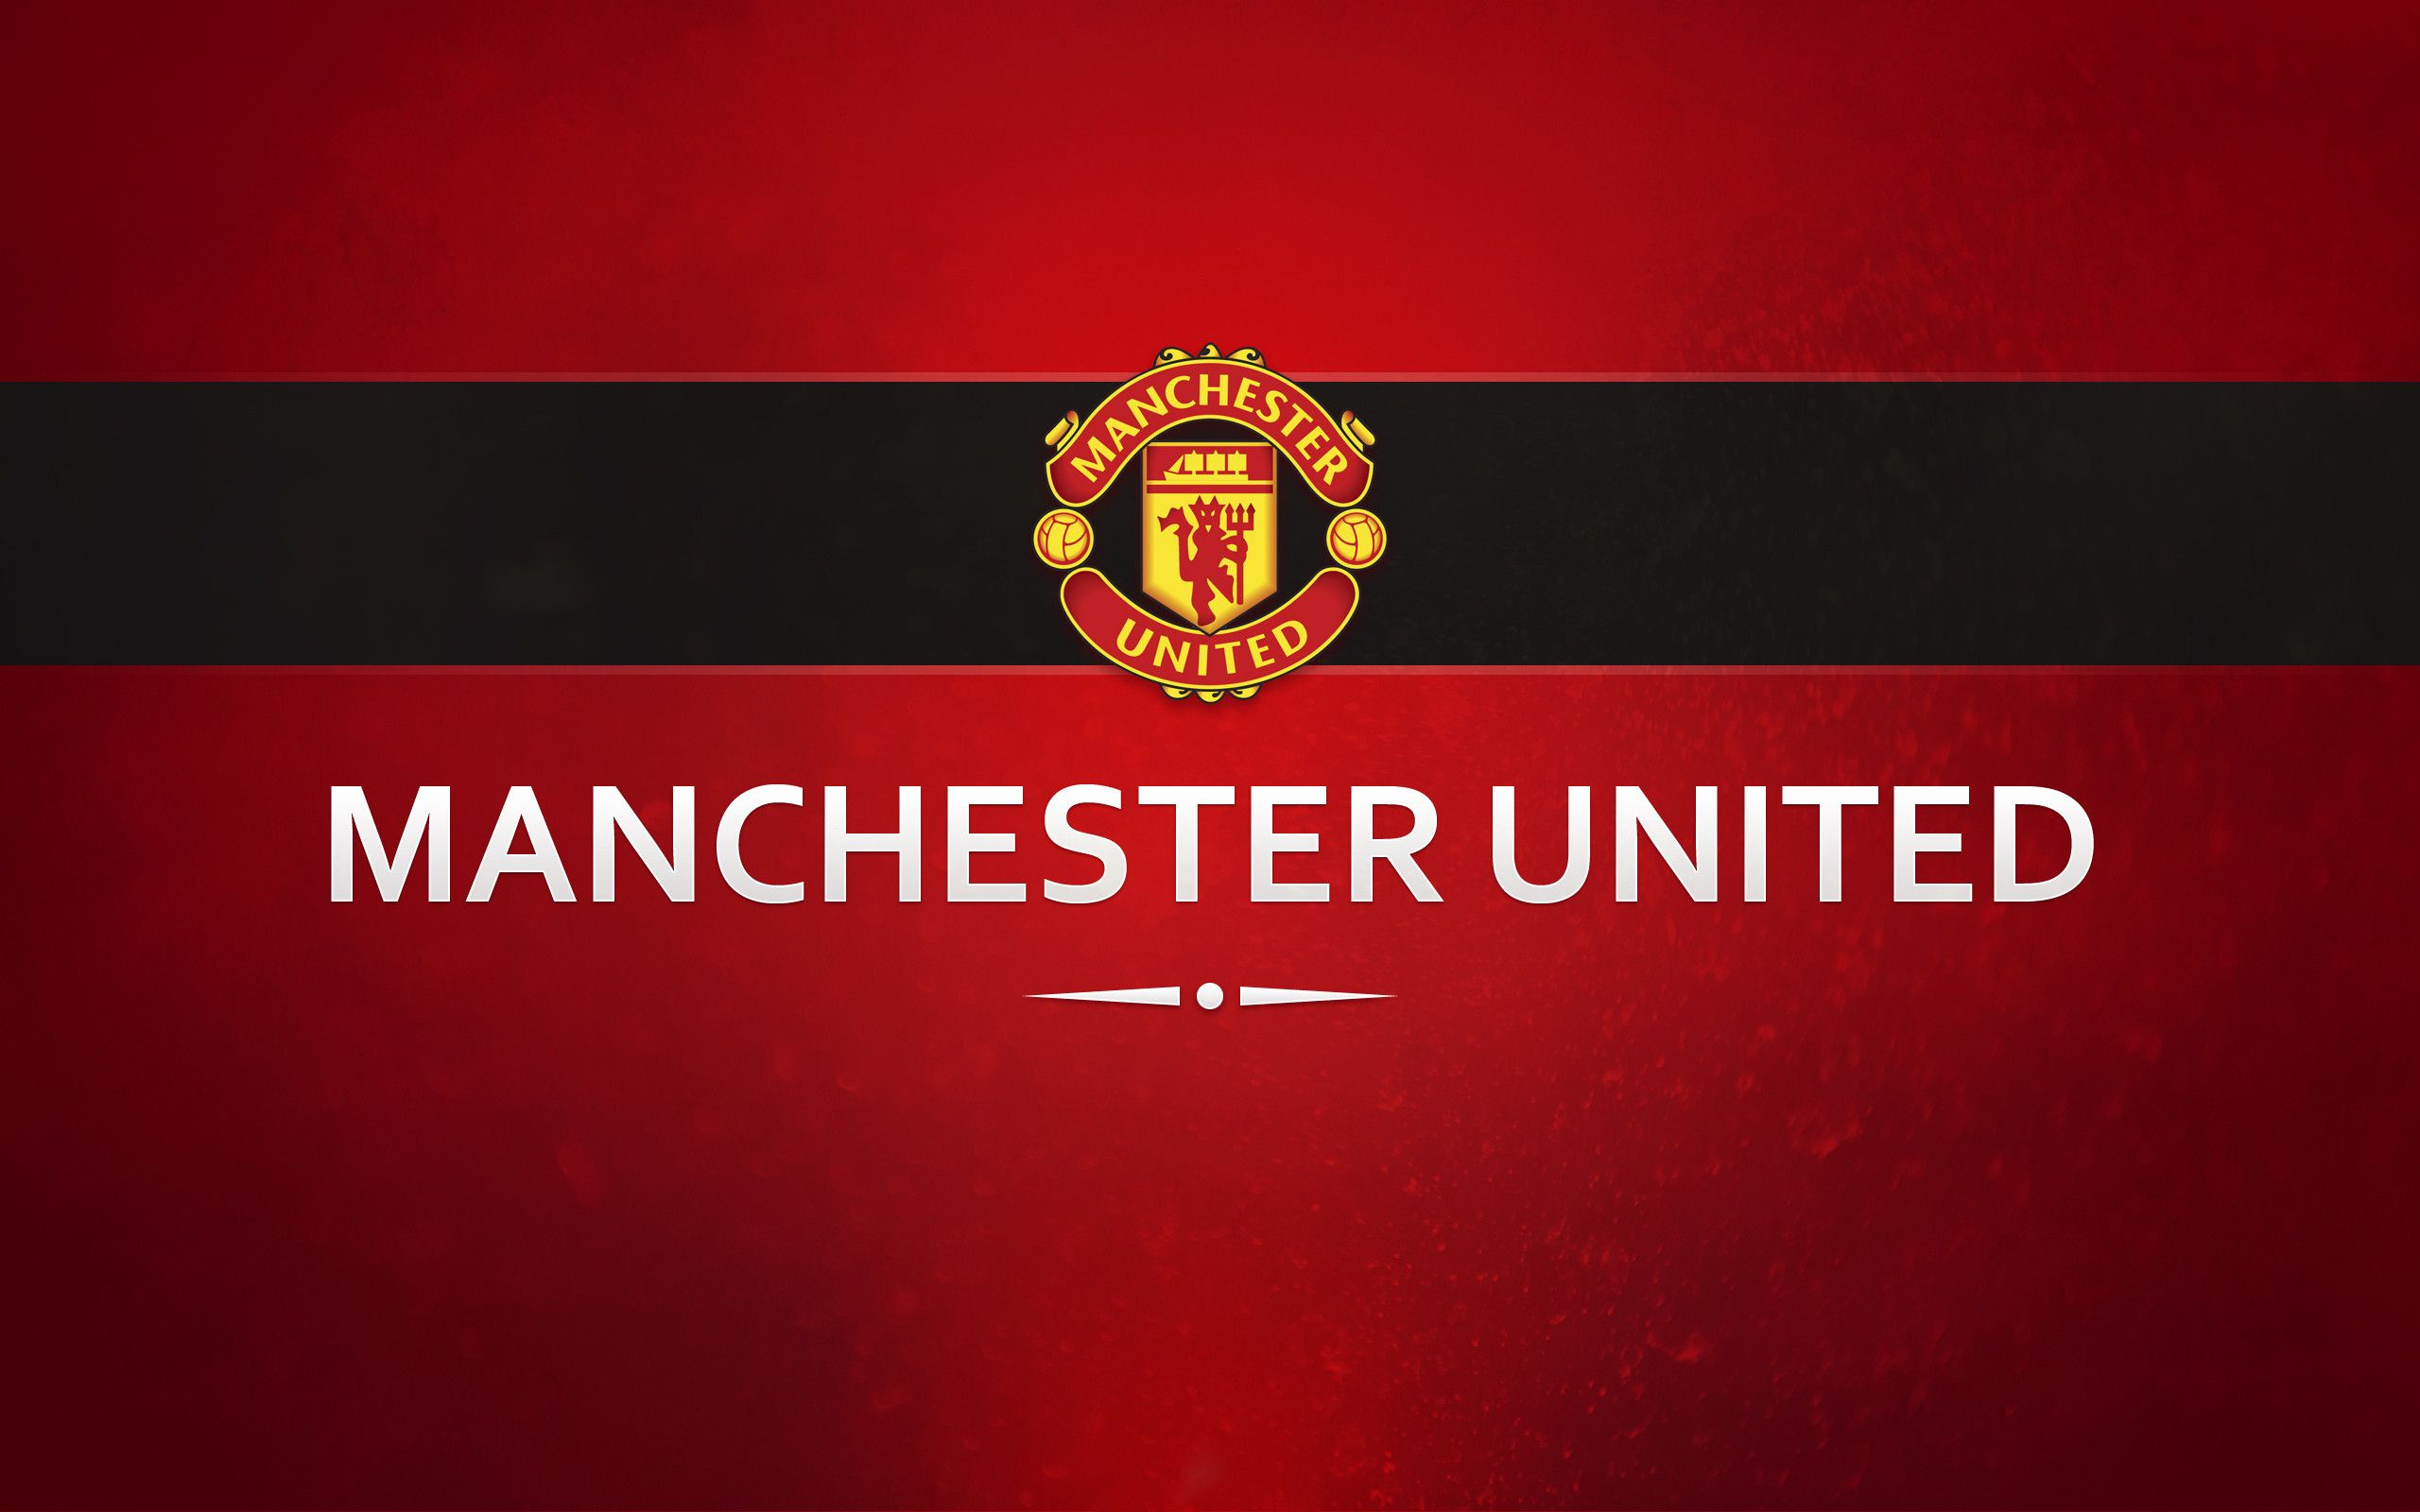 Wallpapers Man United